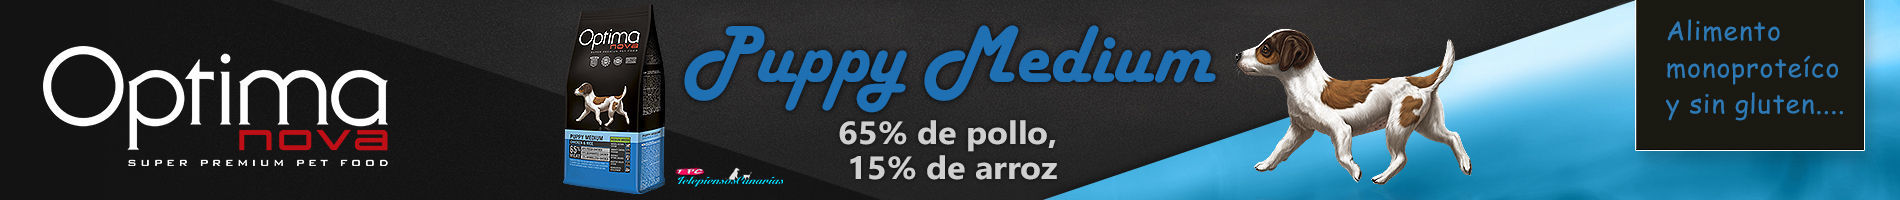 Optima nova puppy medium, pienso con 65% pollo y 15% arroz